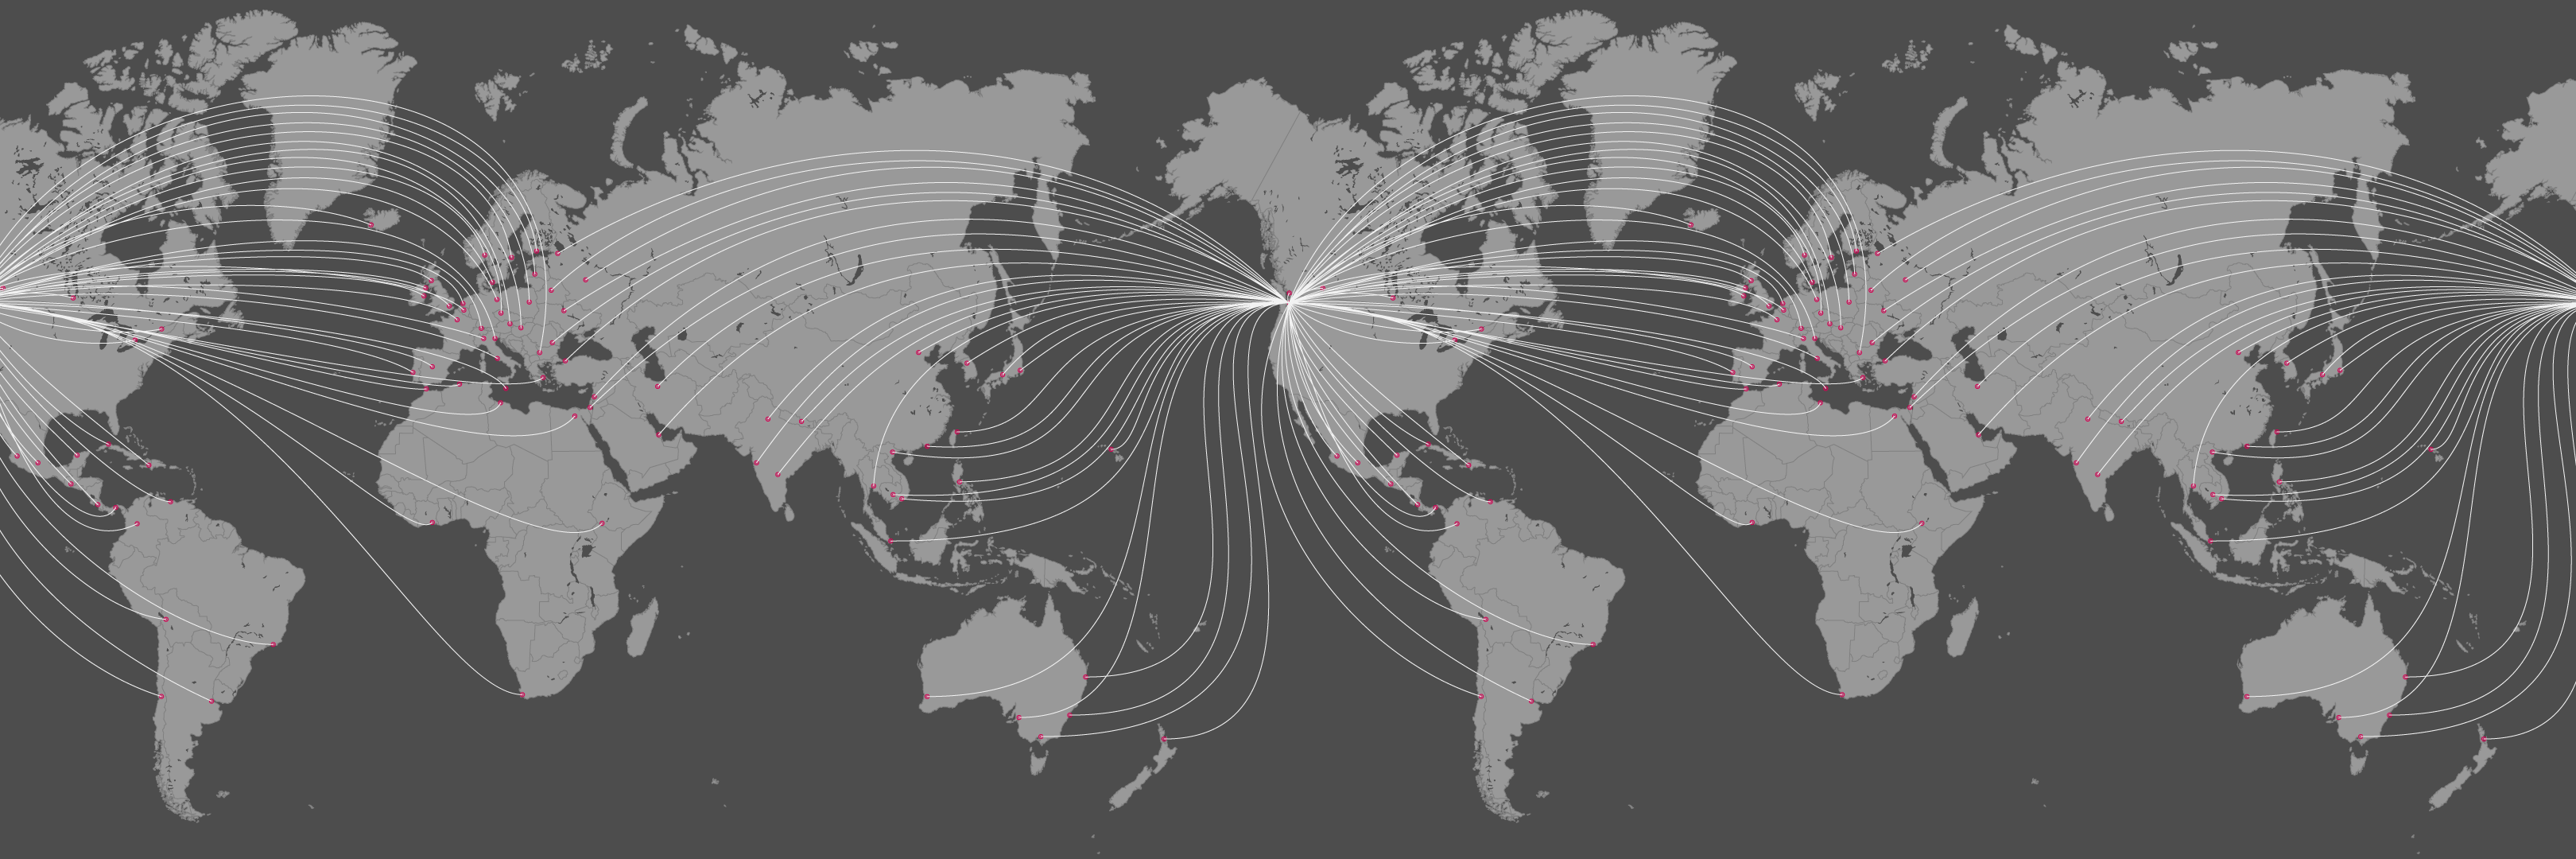 Illustration: a map of global destinations for international shipping